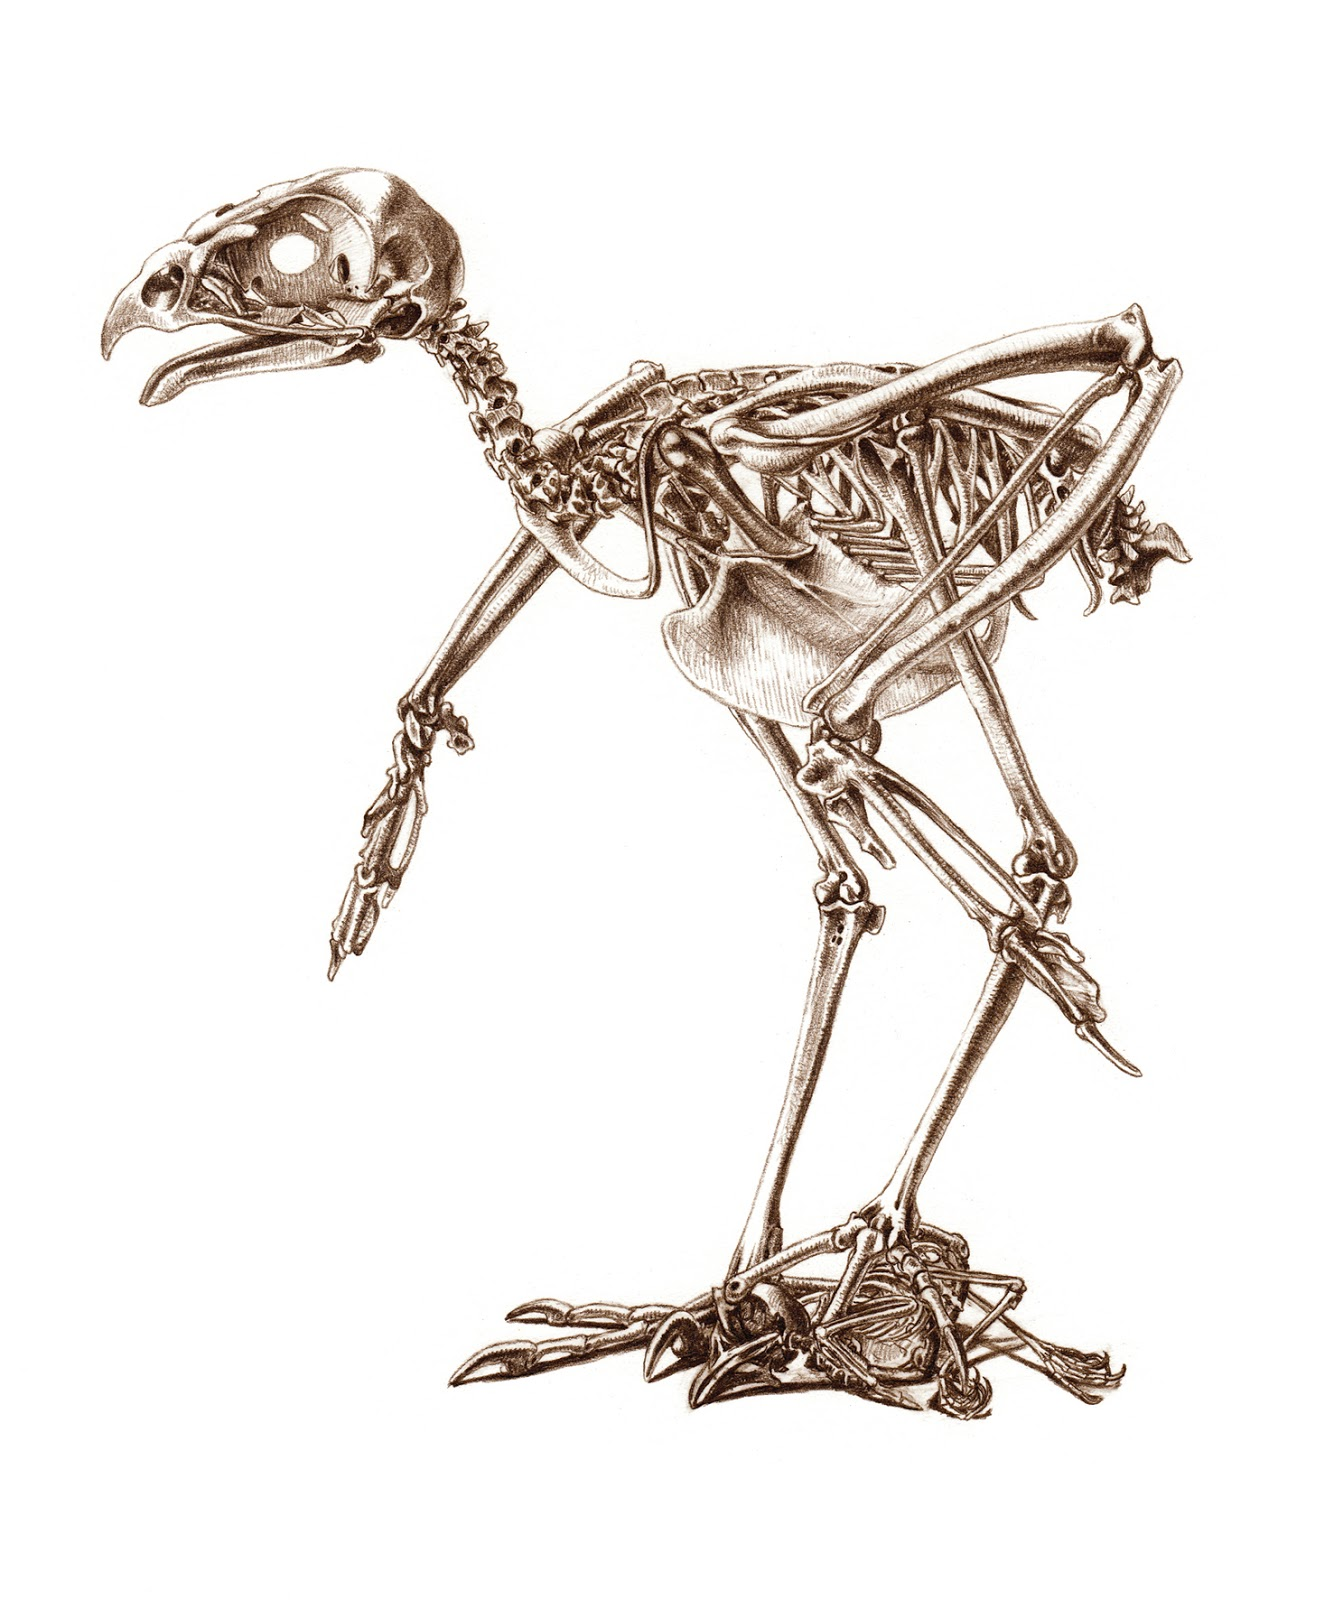 Eagle Skeleton Sean S D More Haliaeetus Leucocephalus Research Eydt Bald Diagram Galleryhipcom The Hippest Galleries For Kids